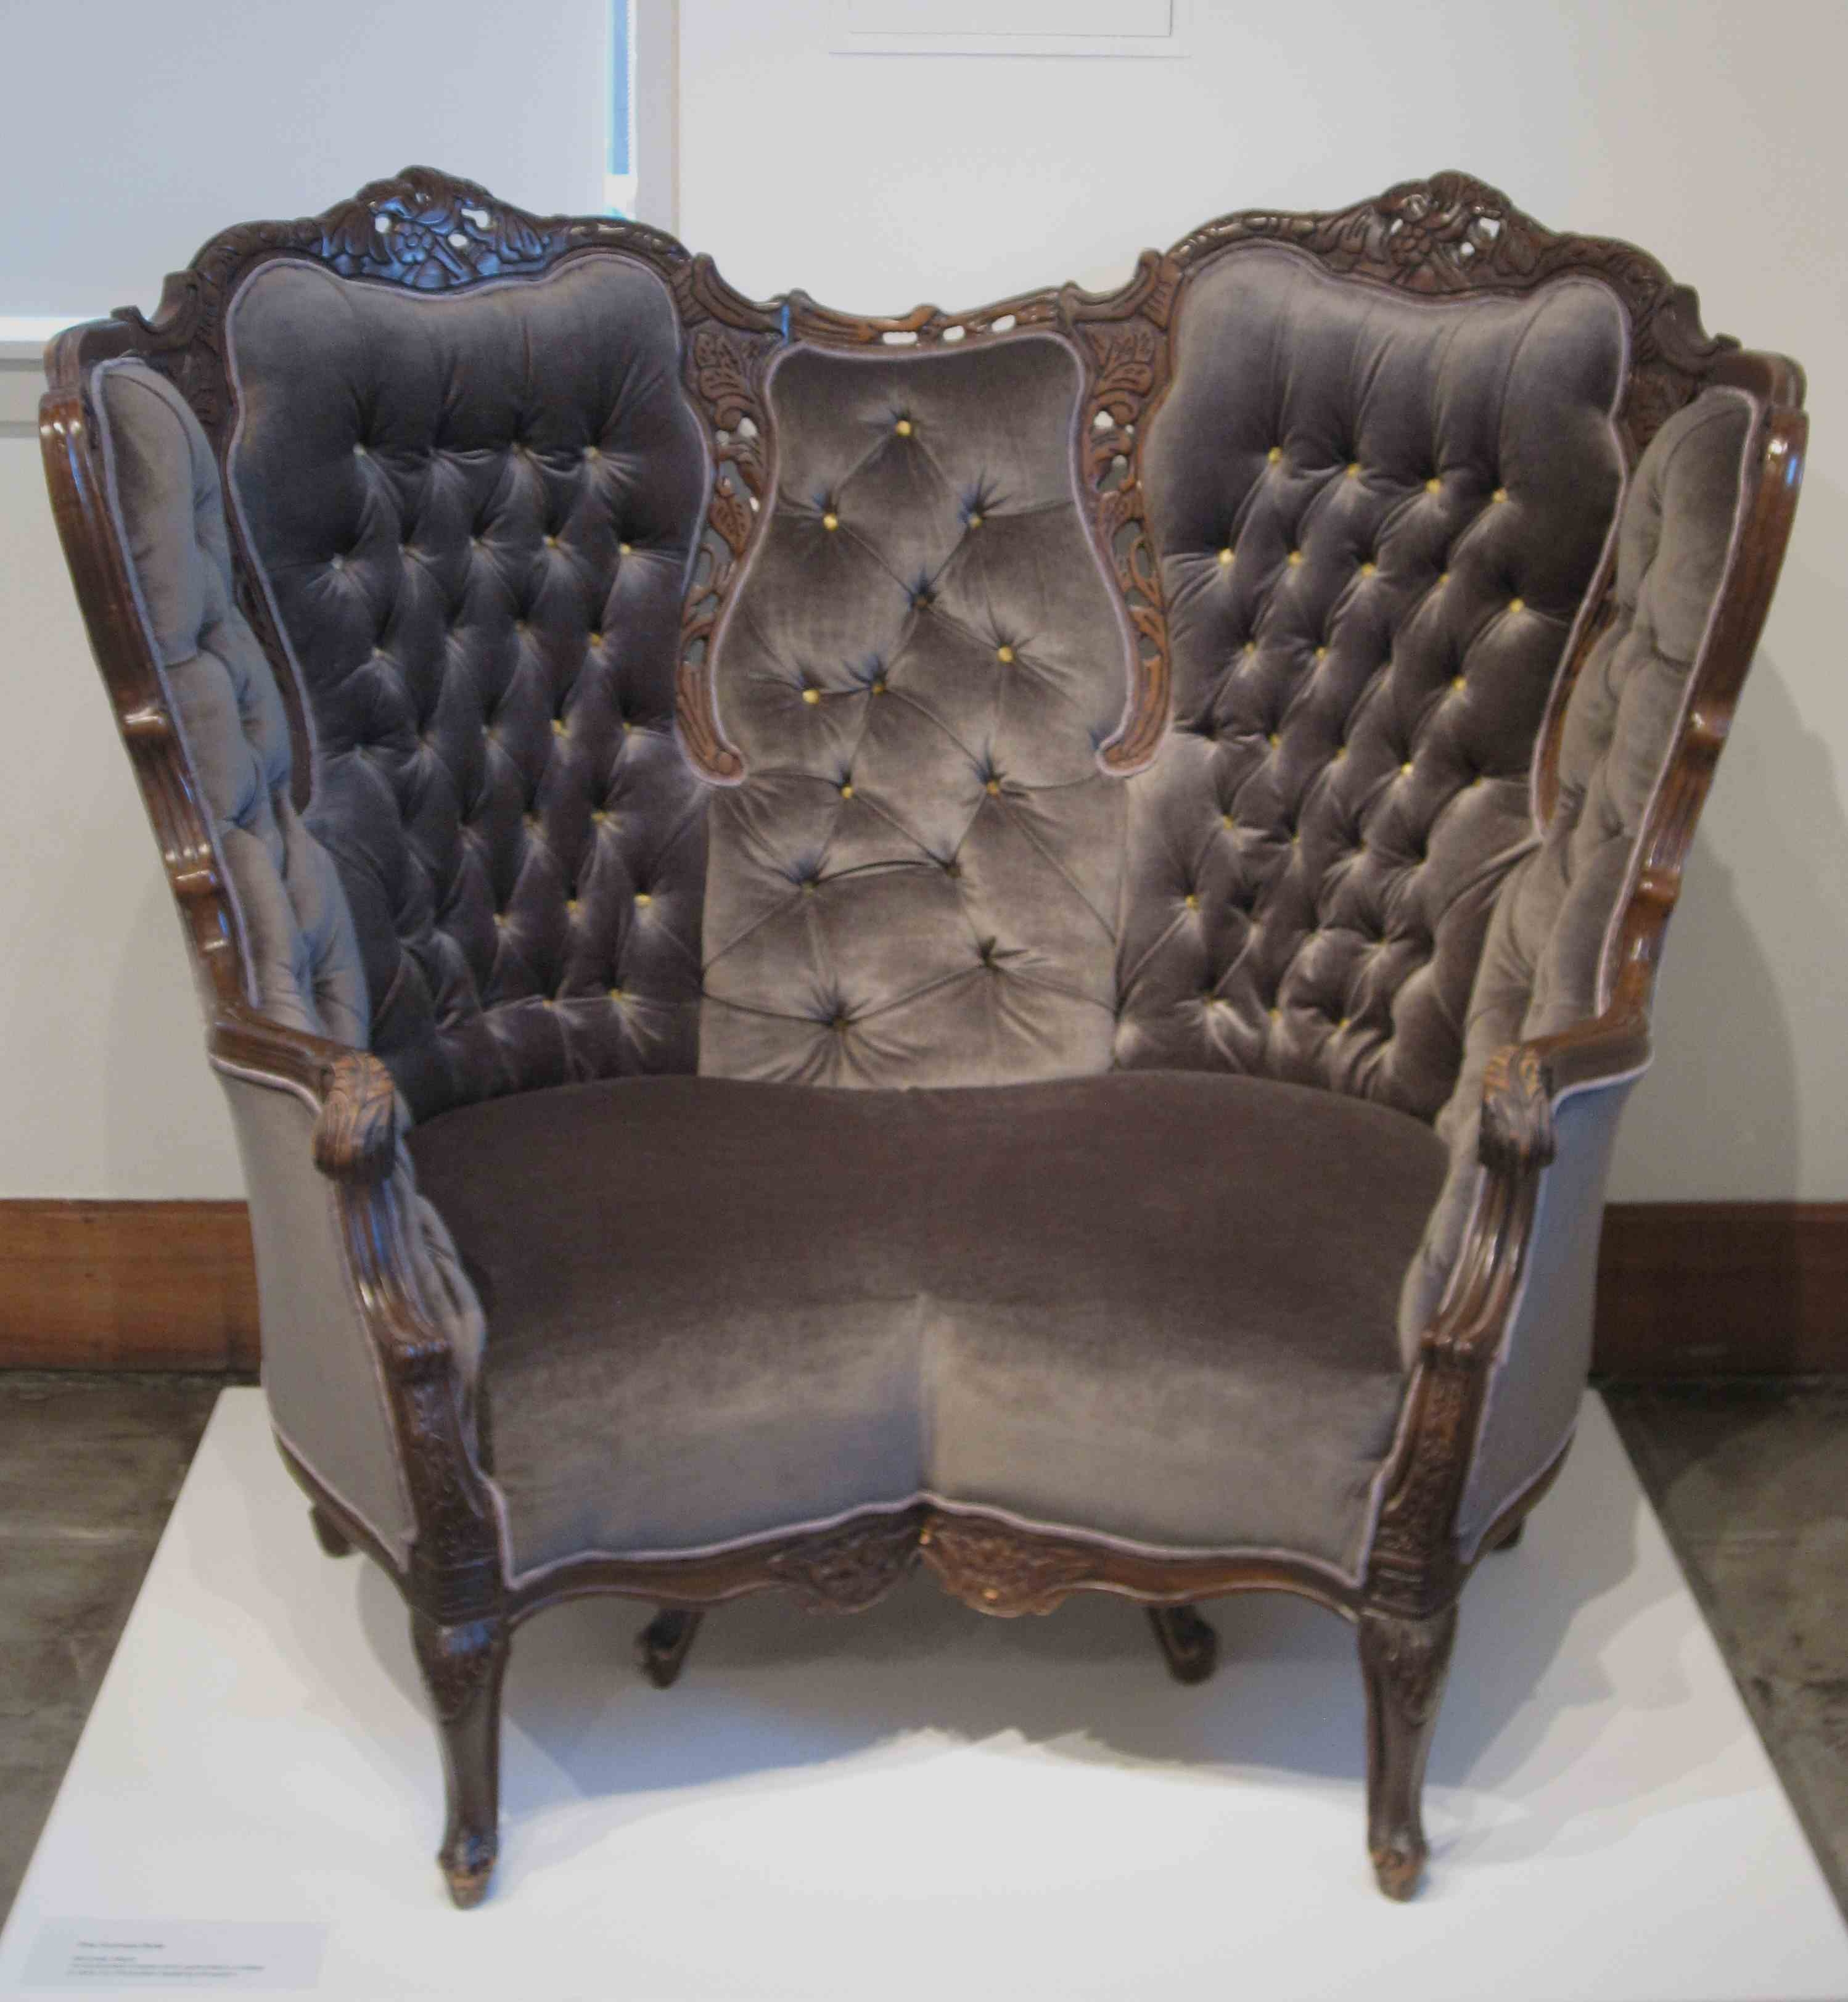 Dark Color Victorian Leather Chair With High Back And Arm Plus Regarding Victorian Leather Sofas (Image 1 of 15)